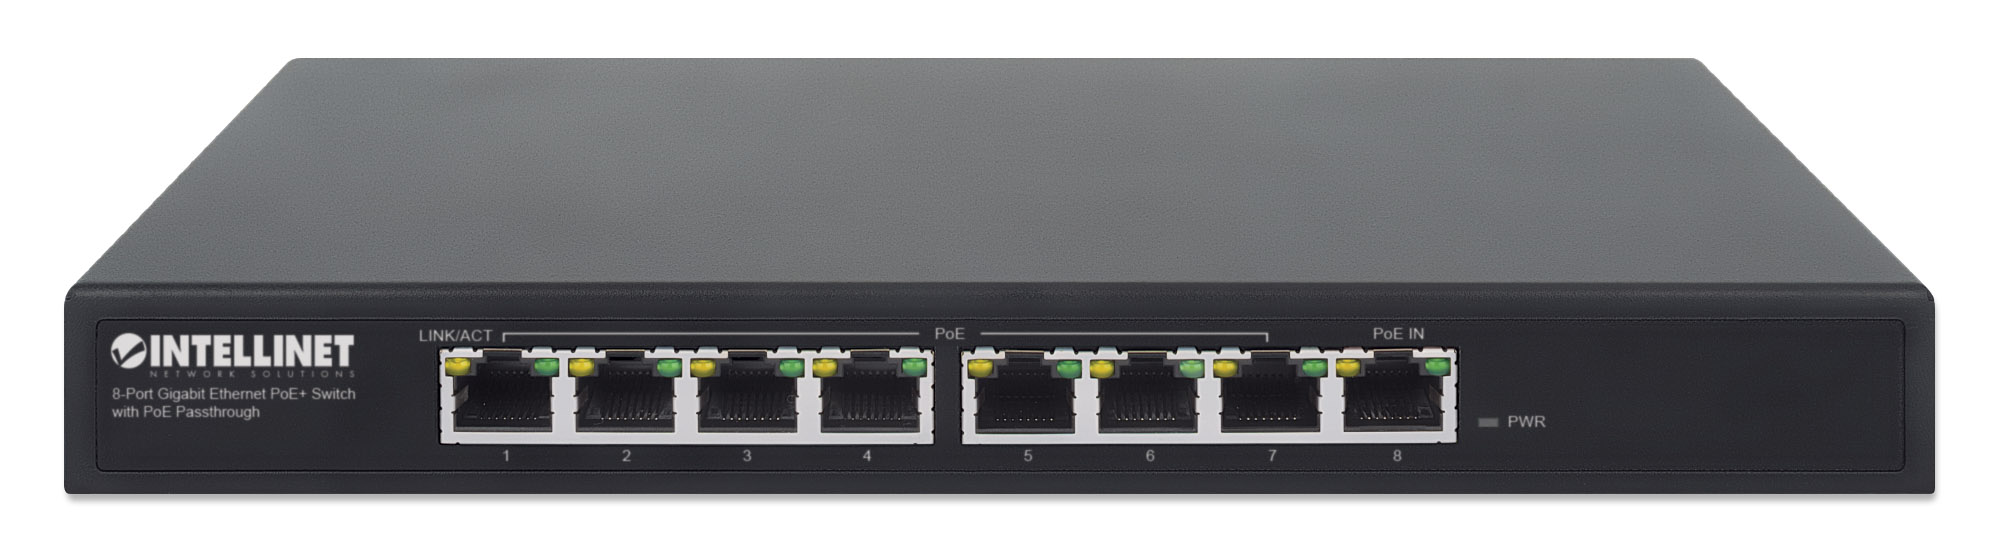 8-Port Gigabit Ethernet PoE+ Switch with PoE Passthrough